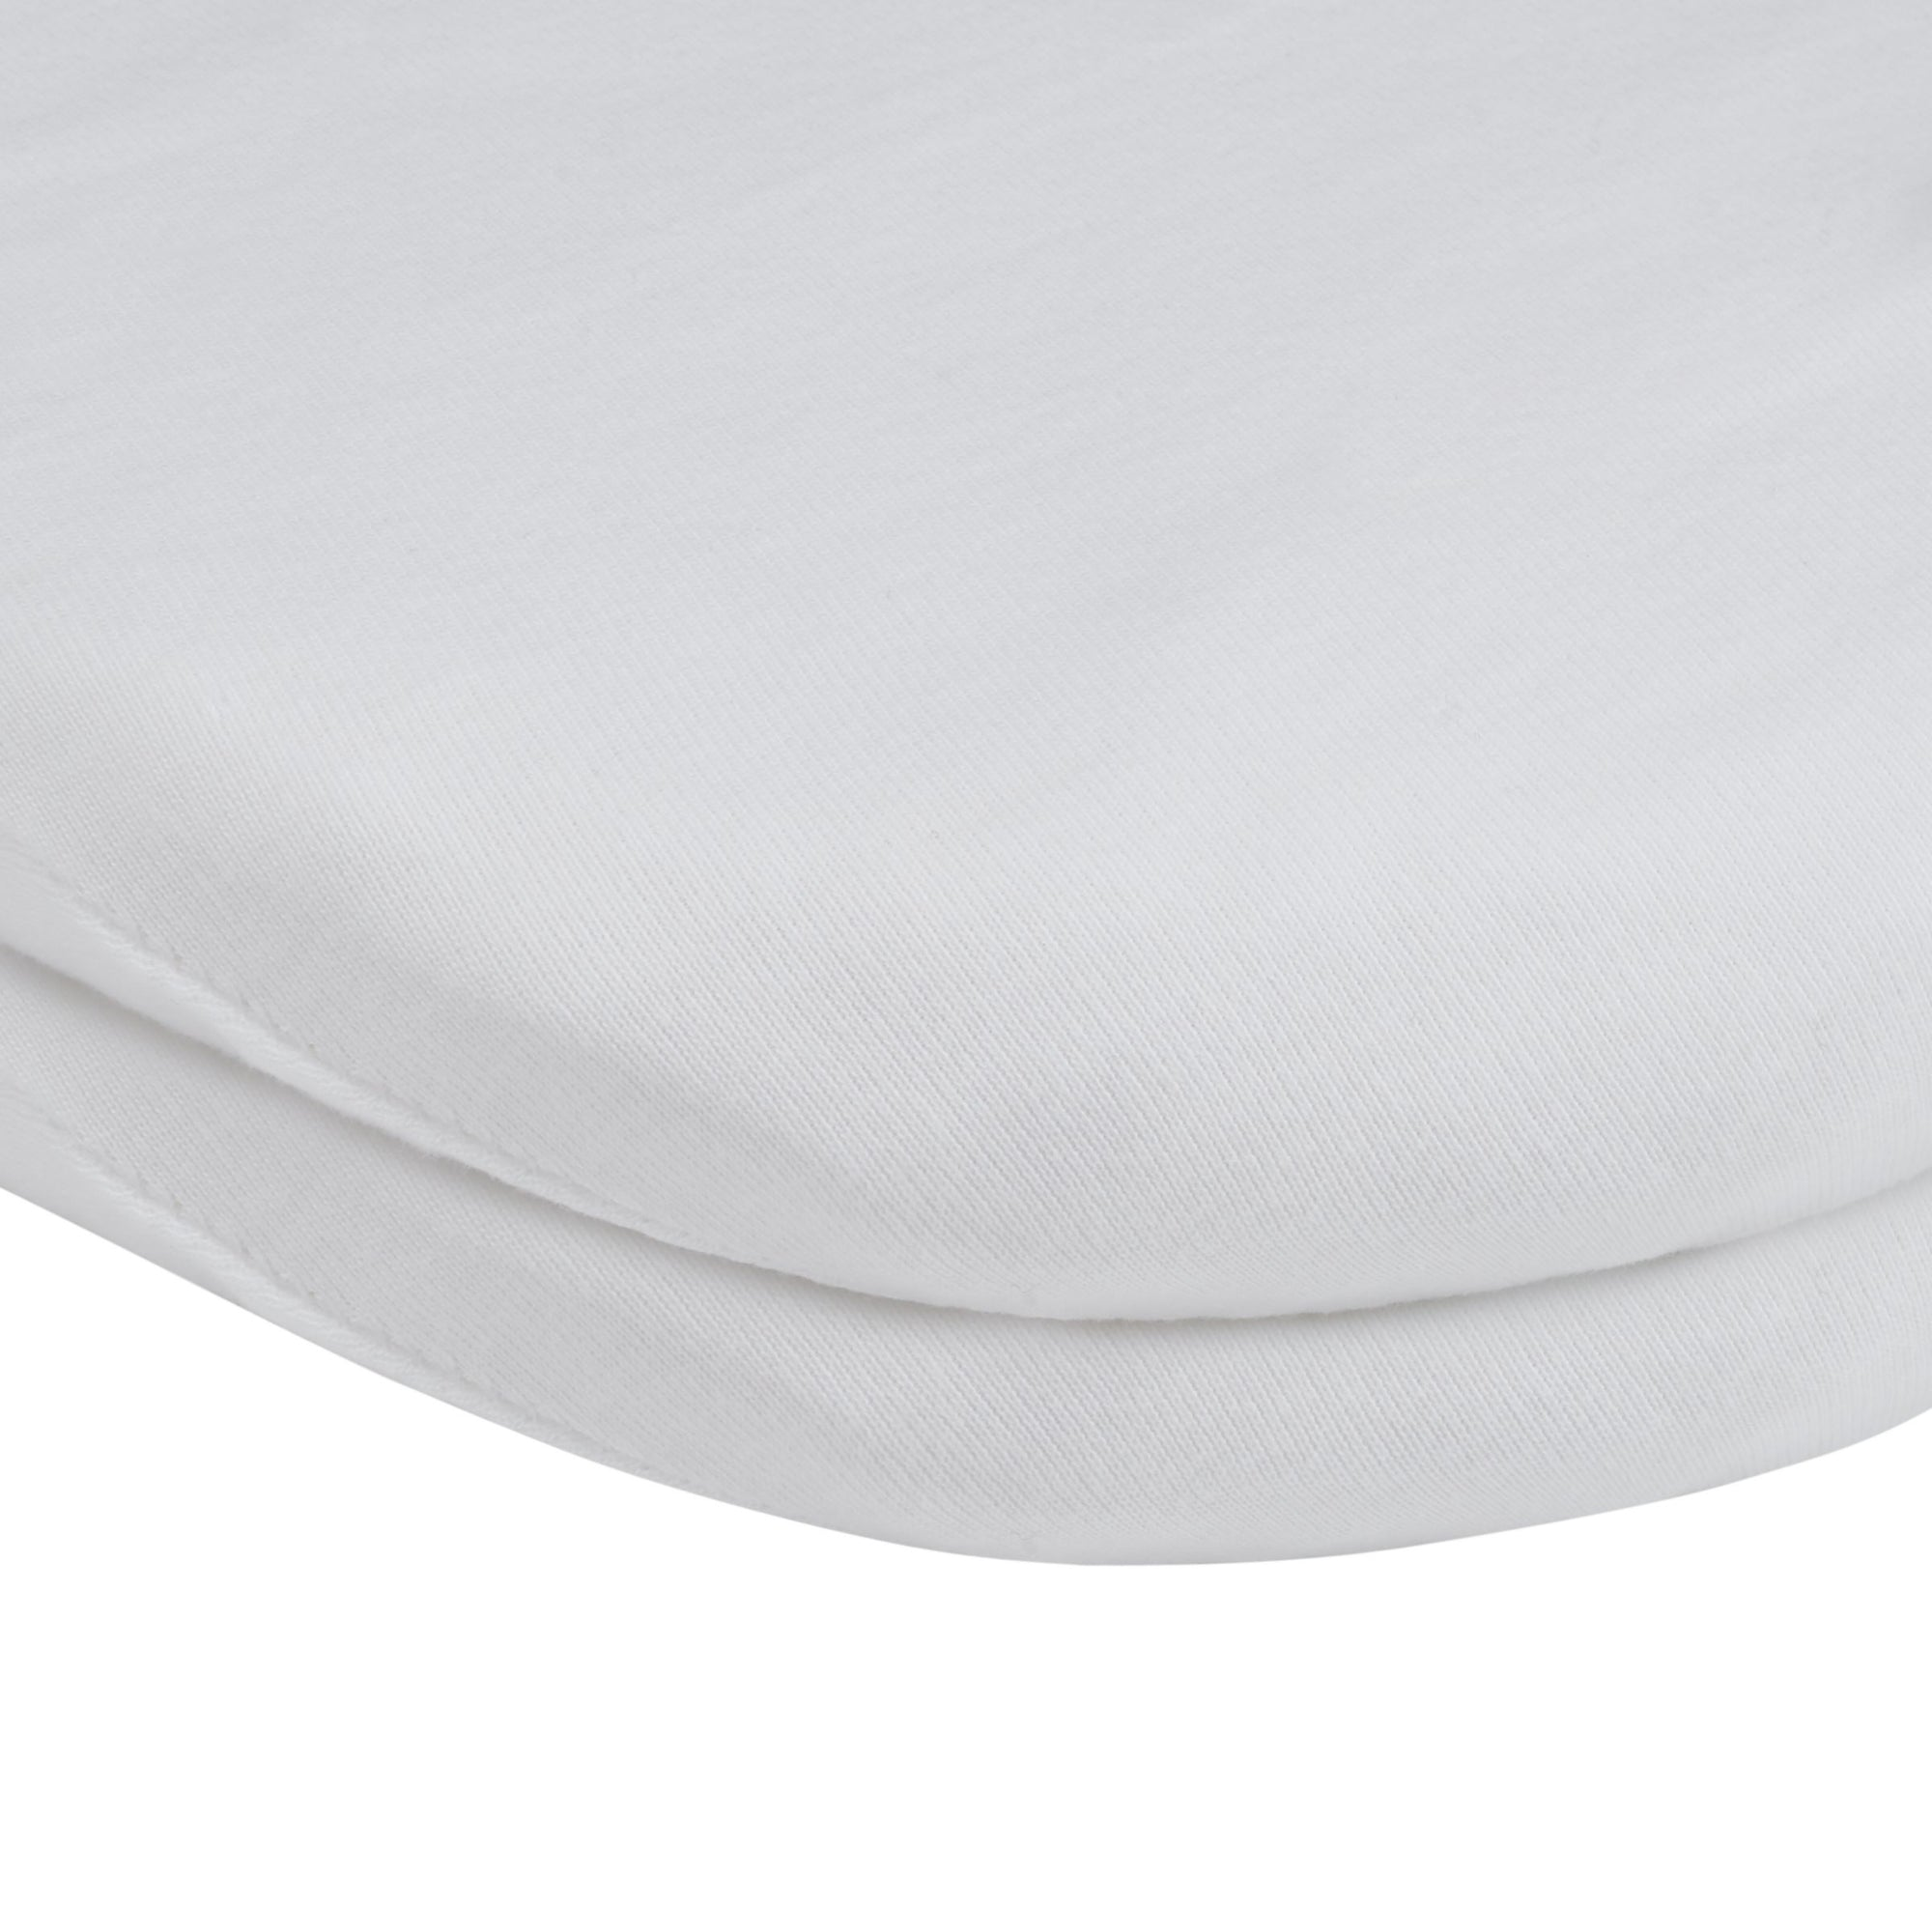 John Lewis & Partners GOTS Organic Cotton Fitted Pram Sheet, Pack of 2, White